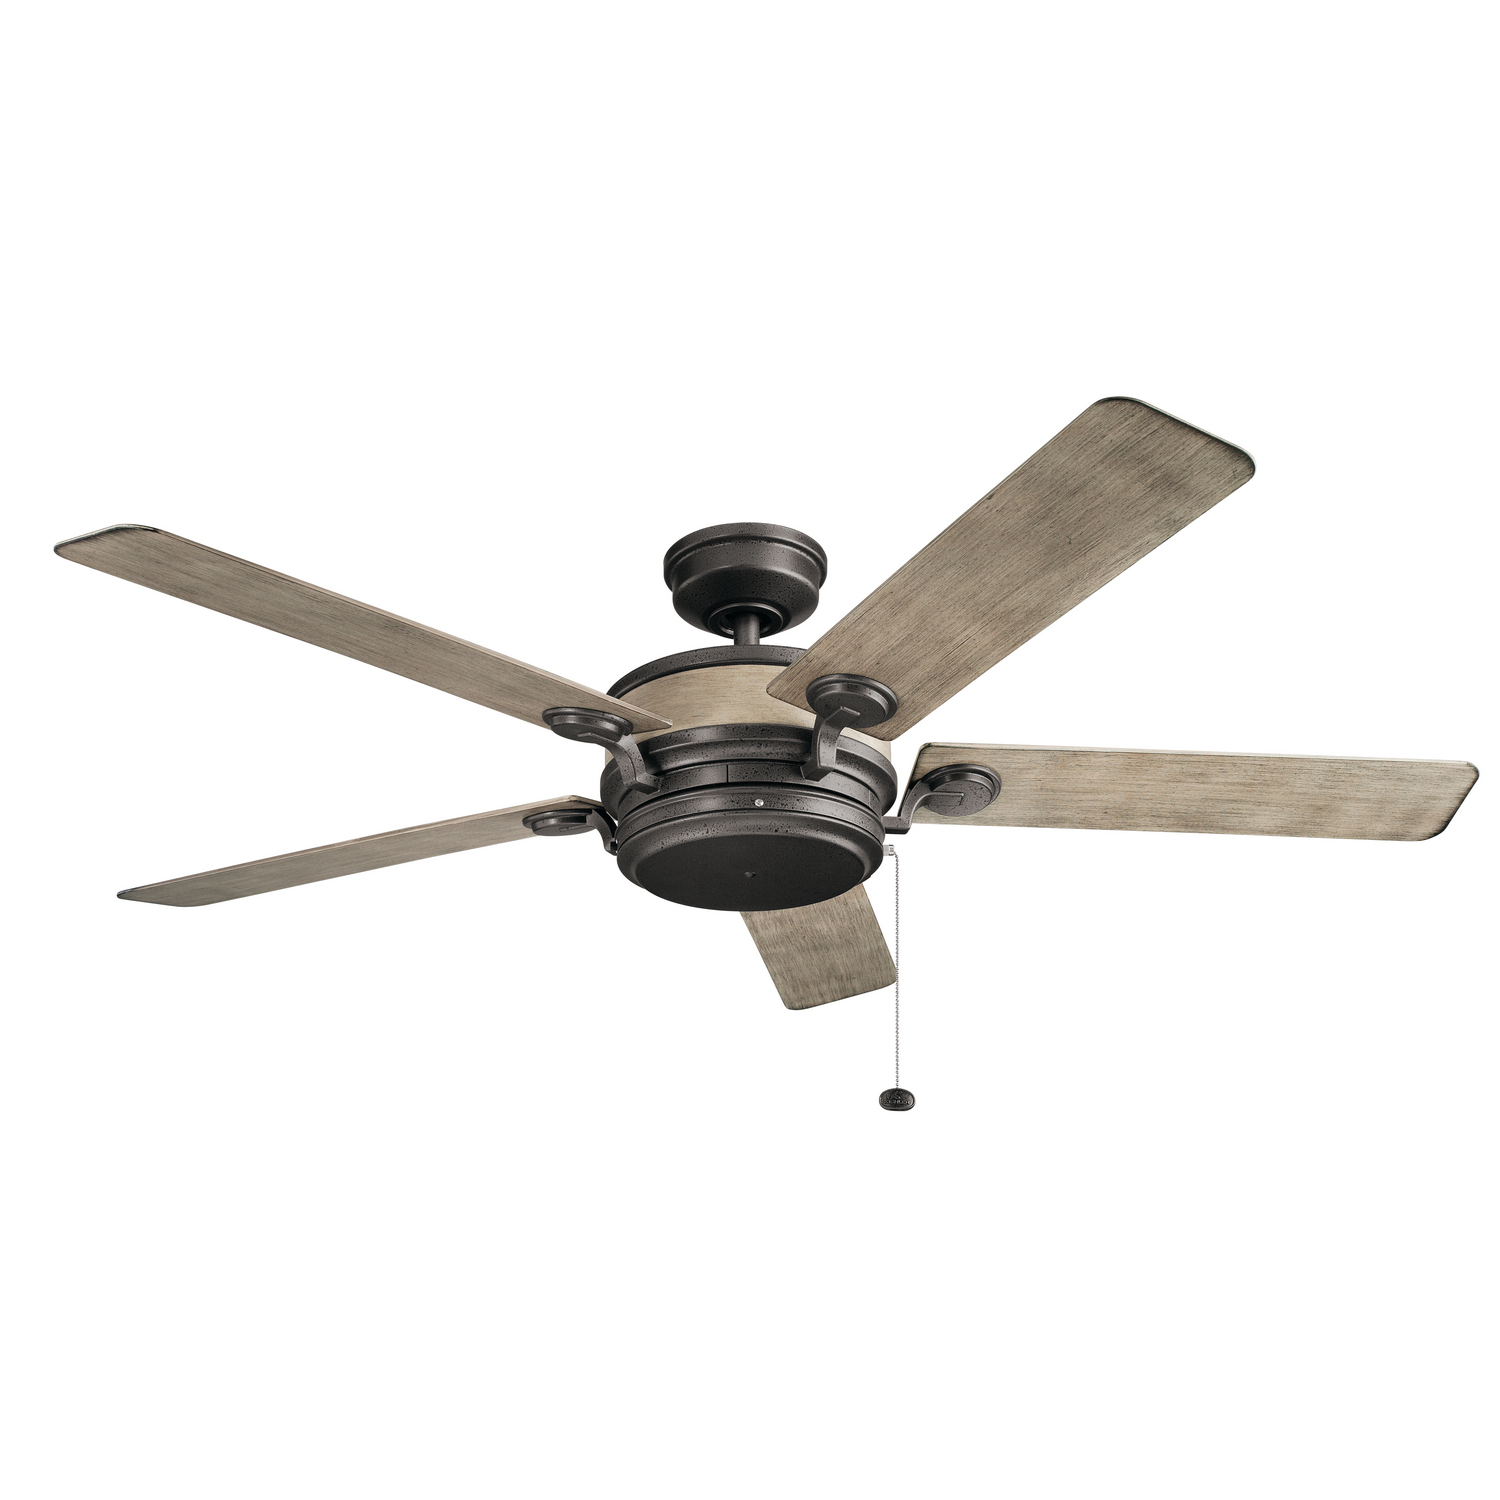 60 inchCeiling Fan from the Uma collection by Kichler 310085AVI